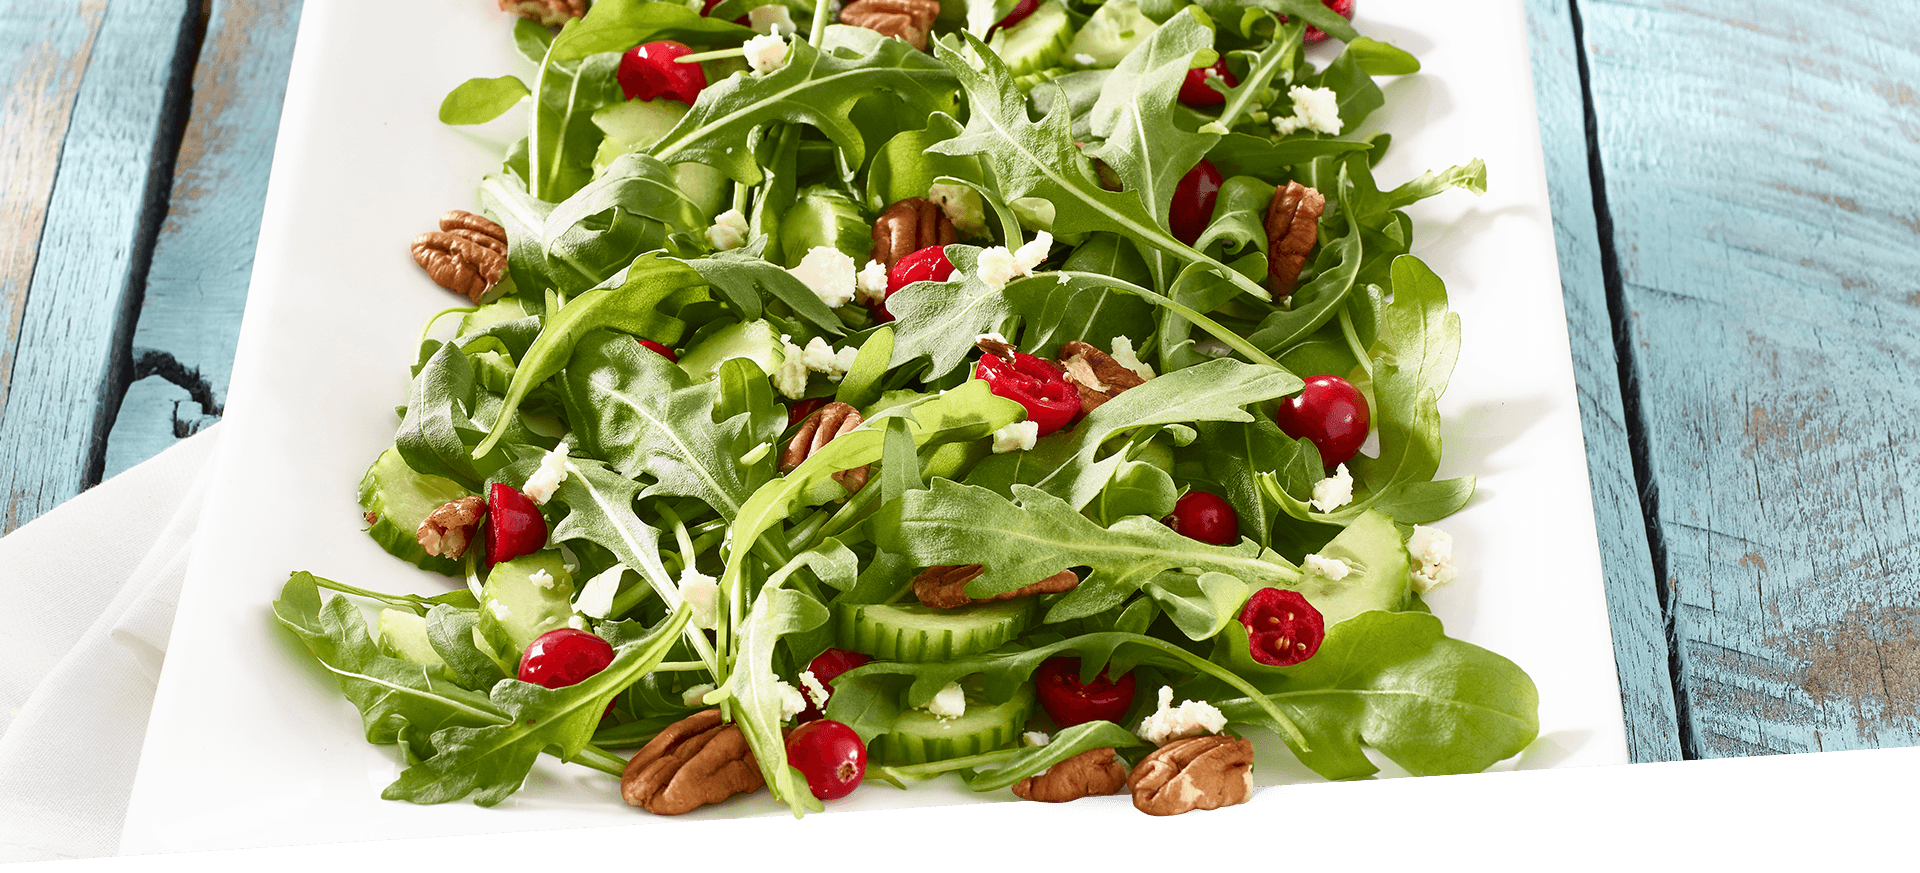 Fresh Arugula Salad header BG